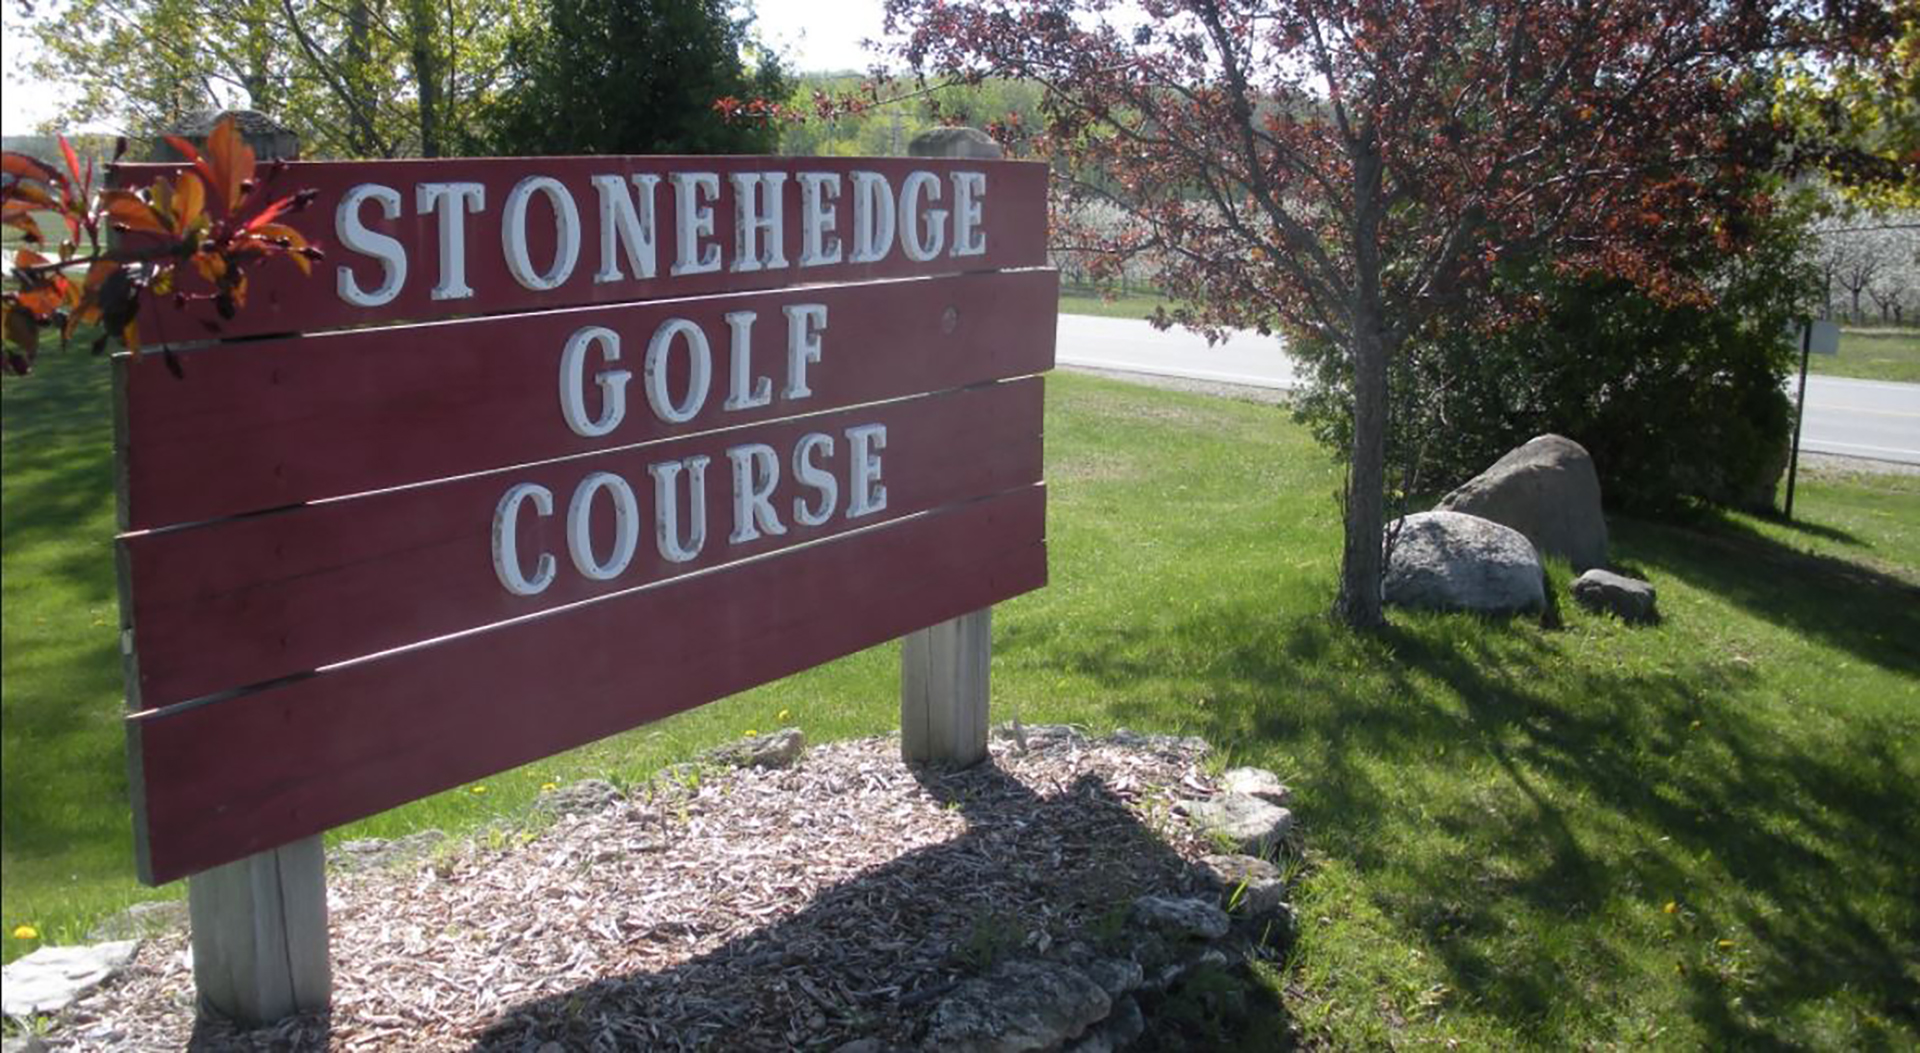 Stonehedge Golf